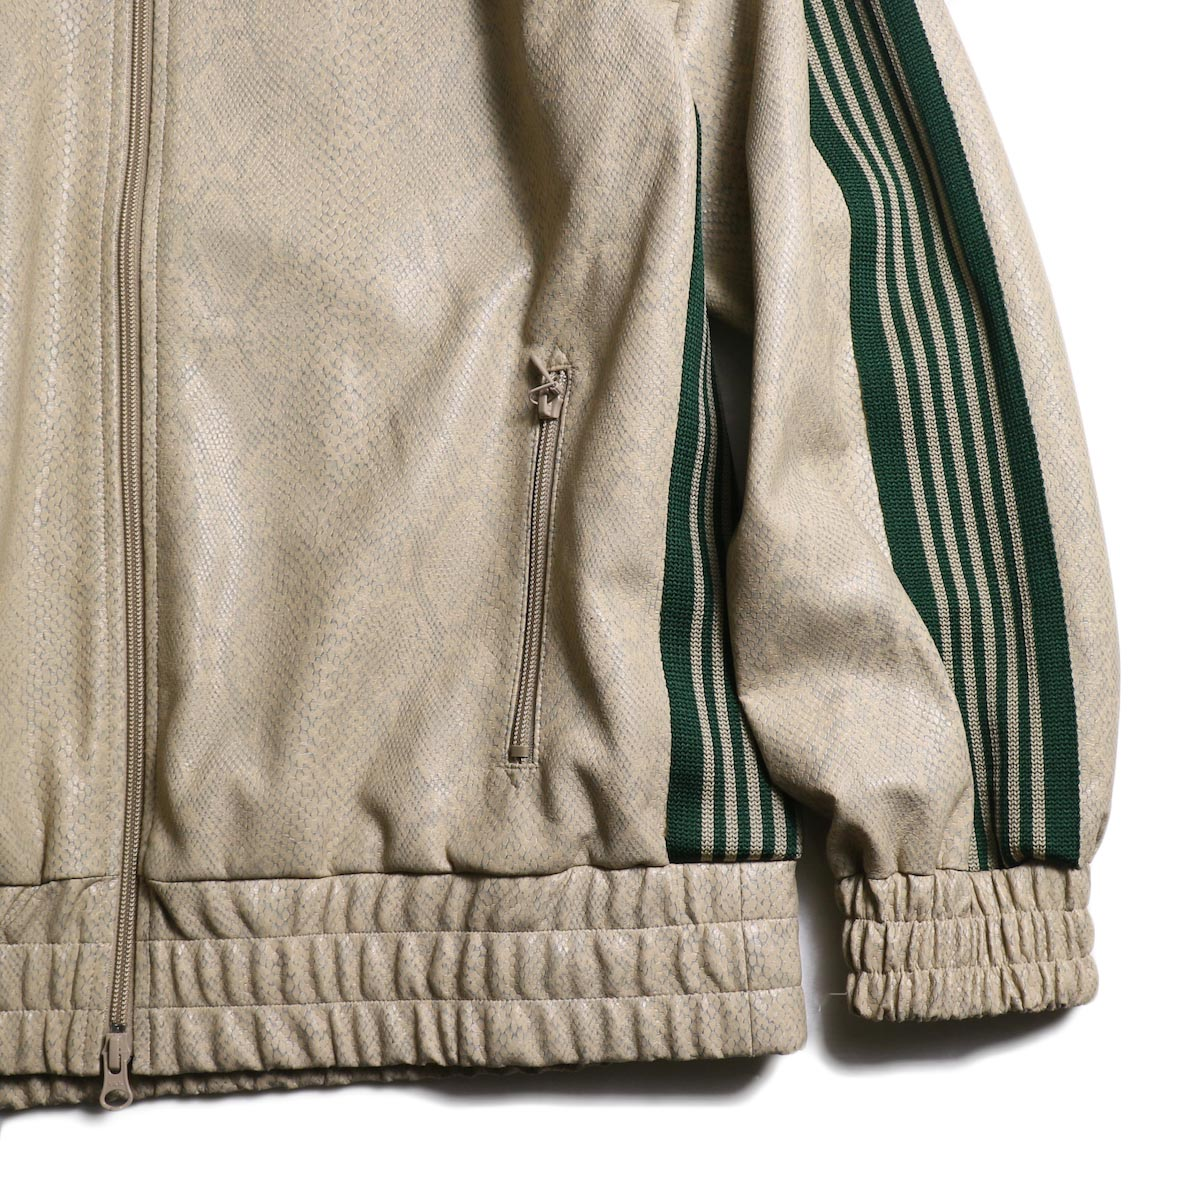 Needles / Track Jacket - Synthetic Leather/Python (Beige)袖、裾